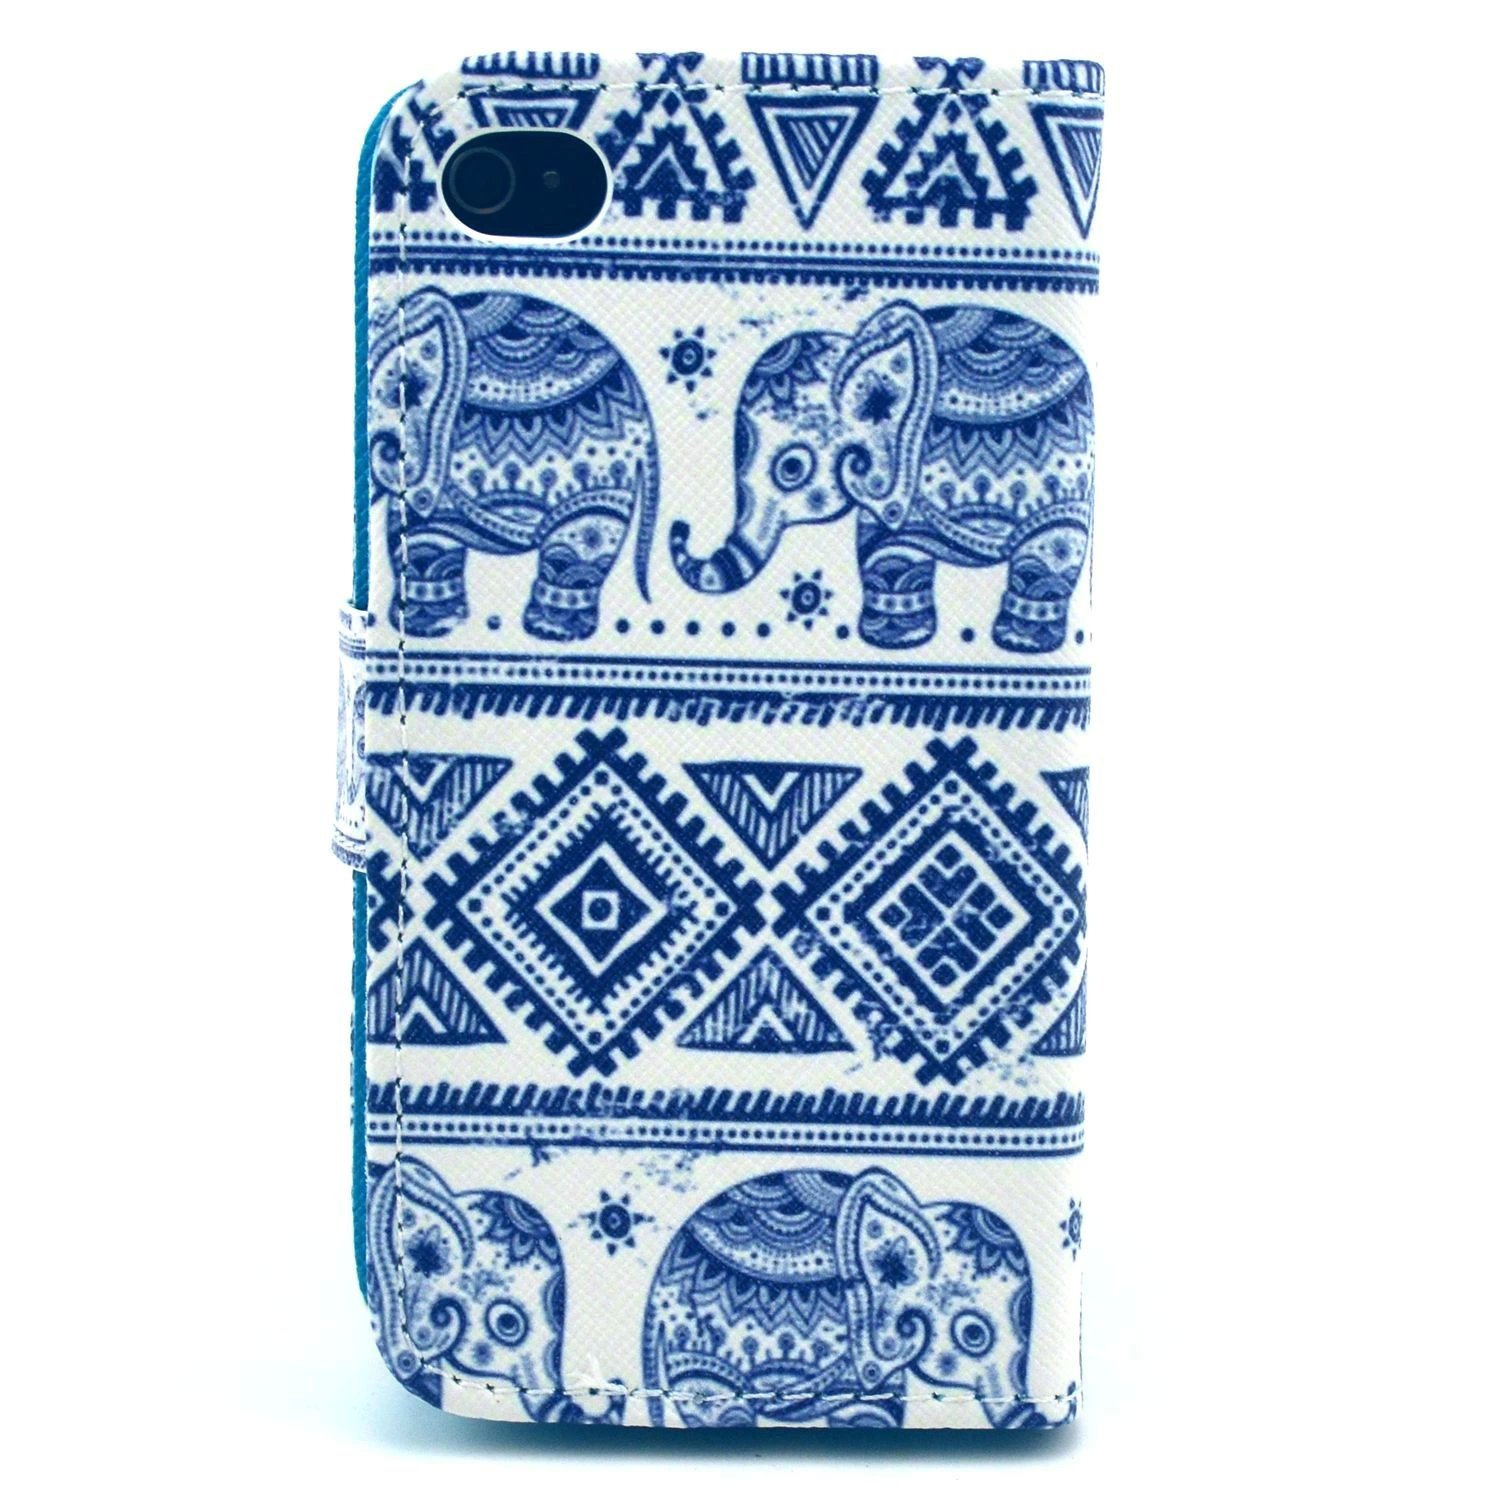 Iphone 4 Caseiphone 4s Case Welity Cute Fashion Casing Softcase Motif Owl Elephant Graphic Magnetic Snap Wallet Flip Pu Leather With Stand Cover For Apple